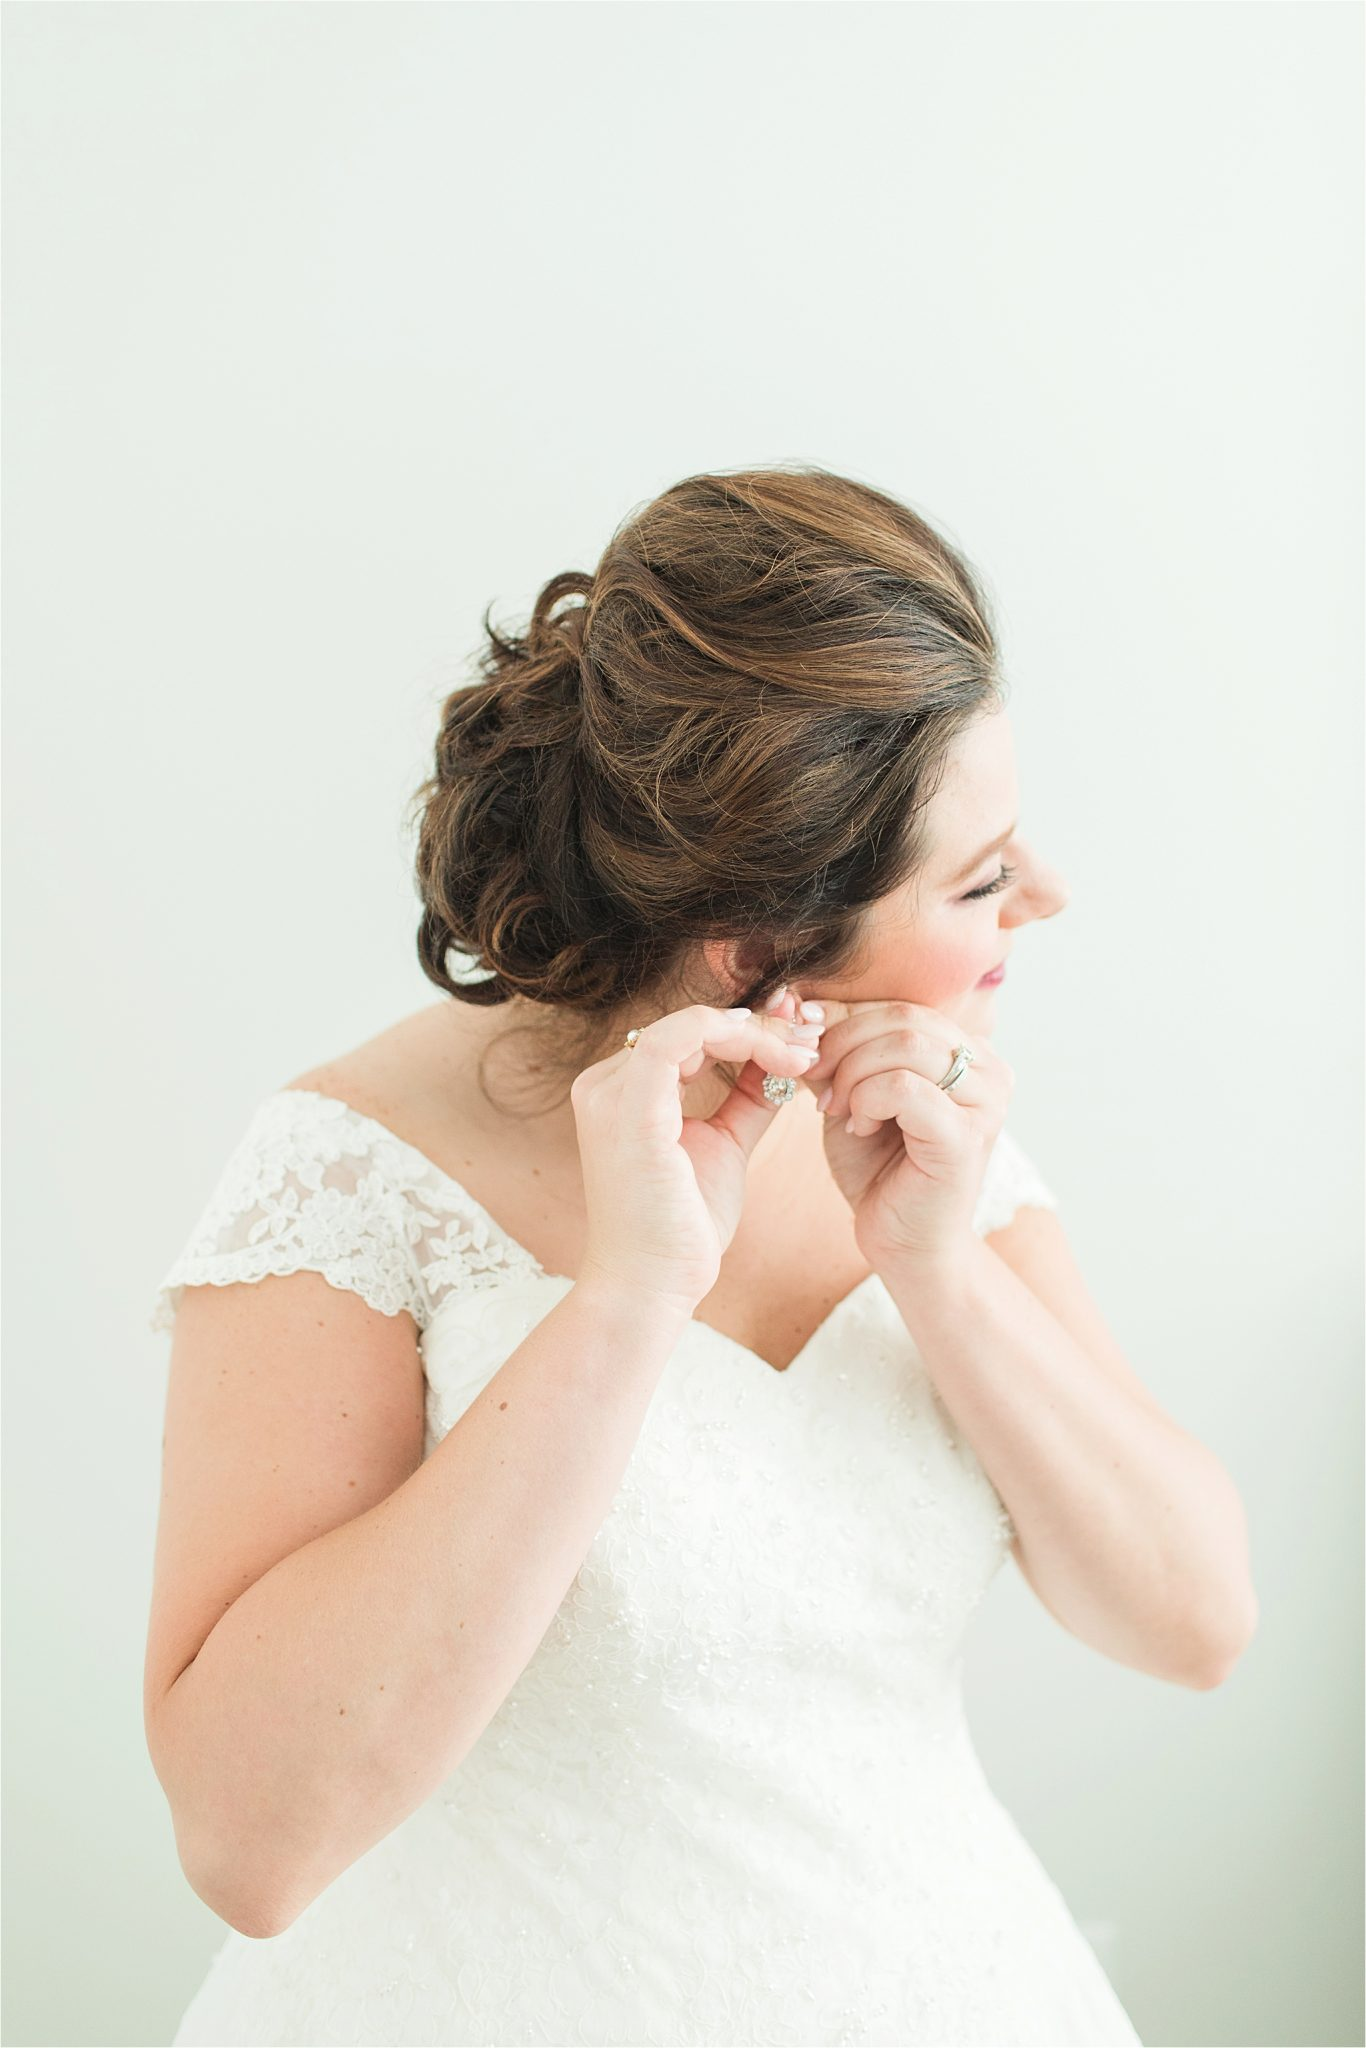 Pastel Themed Wedding-The Chapel at the Waters-Montgomery Alabama Photographer-Miles & Meredyth-Blue Themed Wedding-Wedding Hair-Bride Up-do